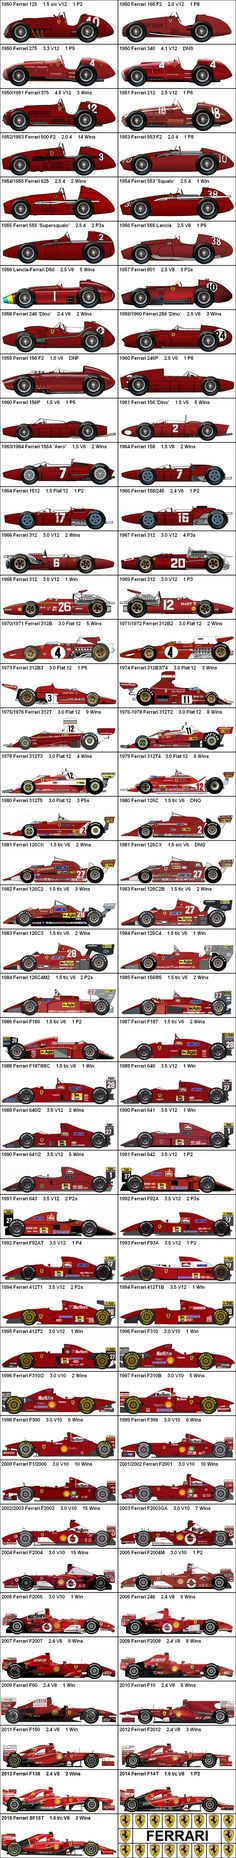 Formula One Grand Prix Ferrari 1950-2015